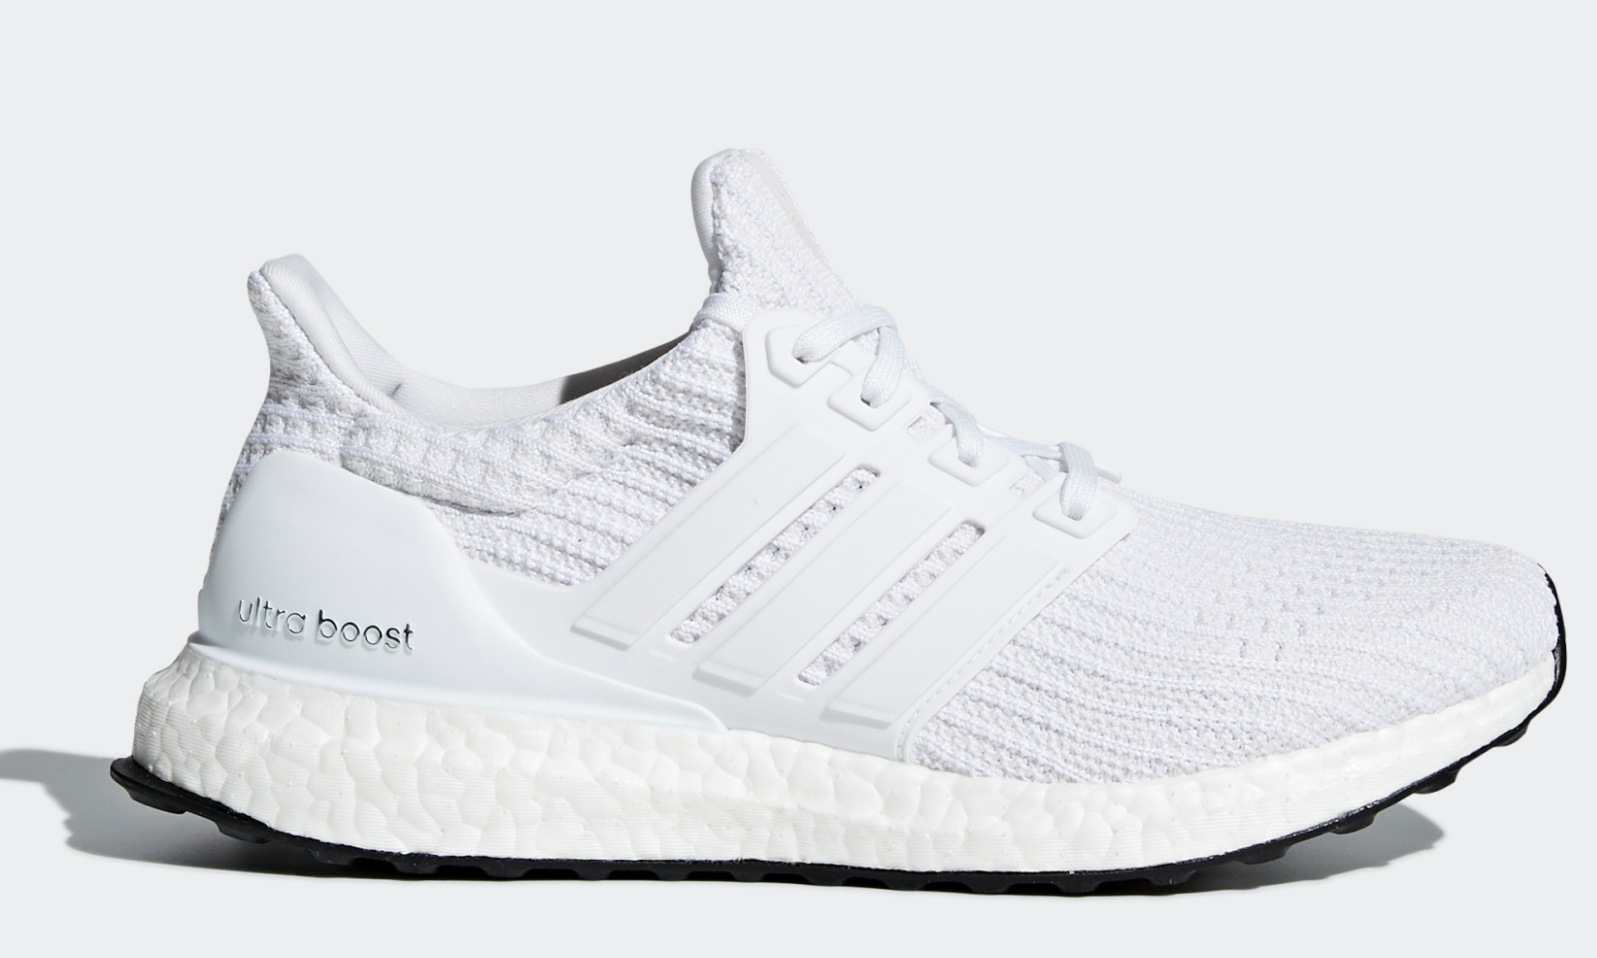 Adidas Ultraboosts are the perfect gym shoe, offering support and cushion for running. They're also really cute and will pull together any fit-fit.  $180